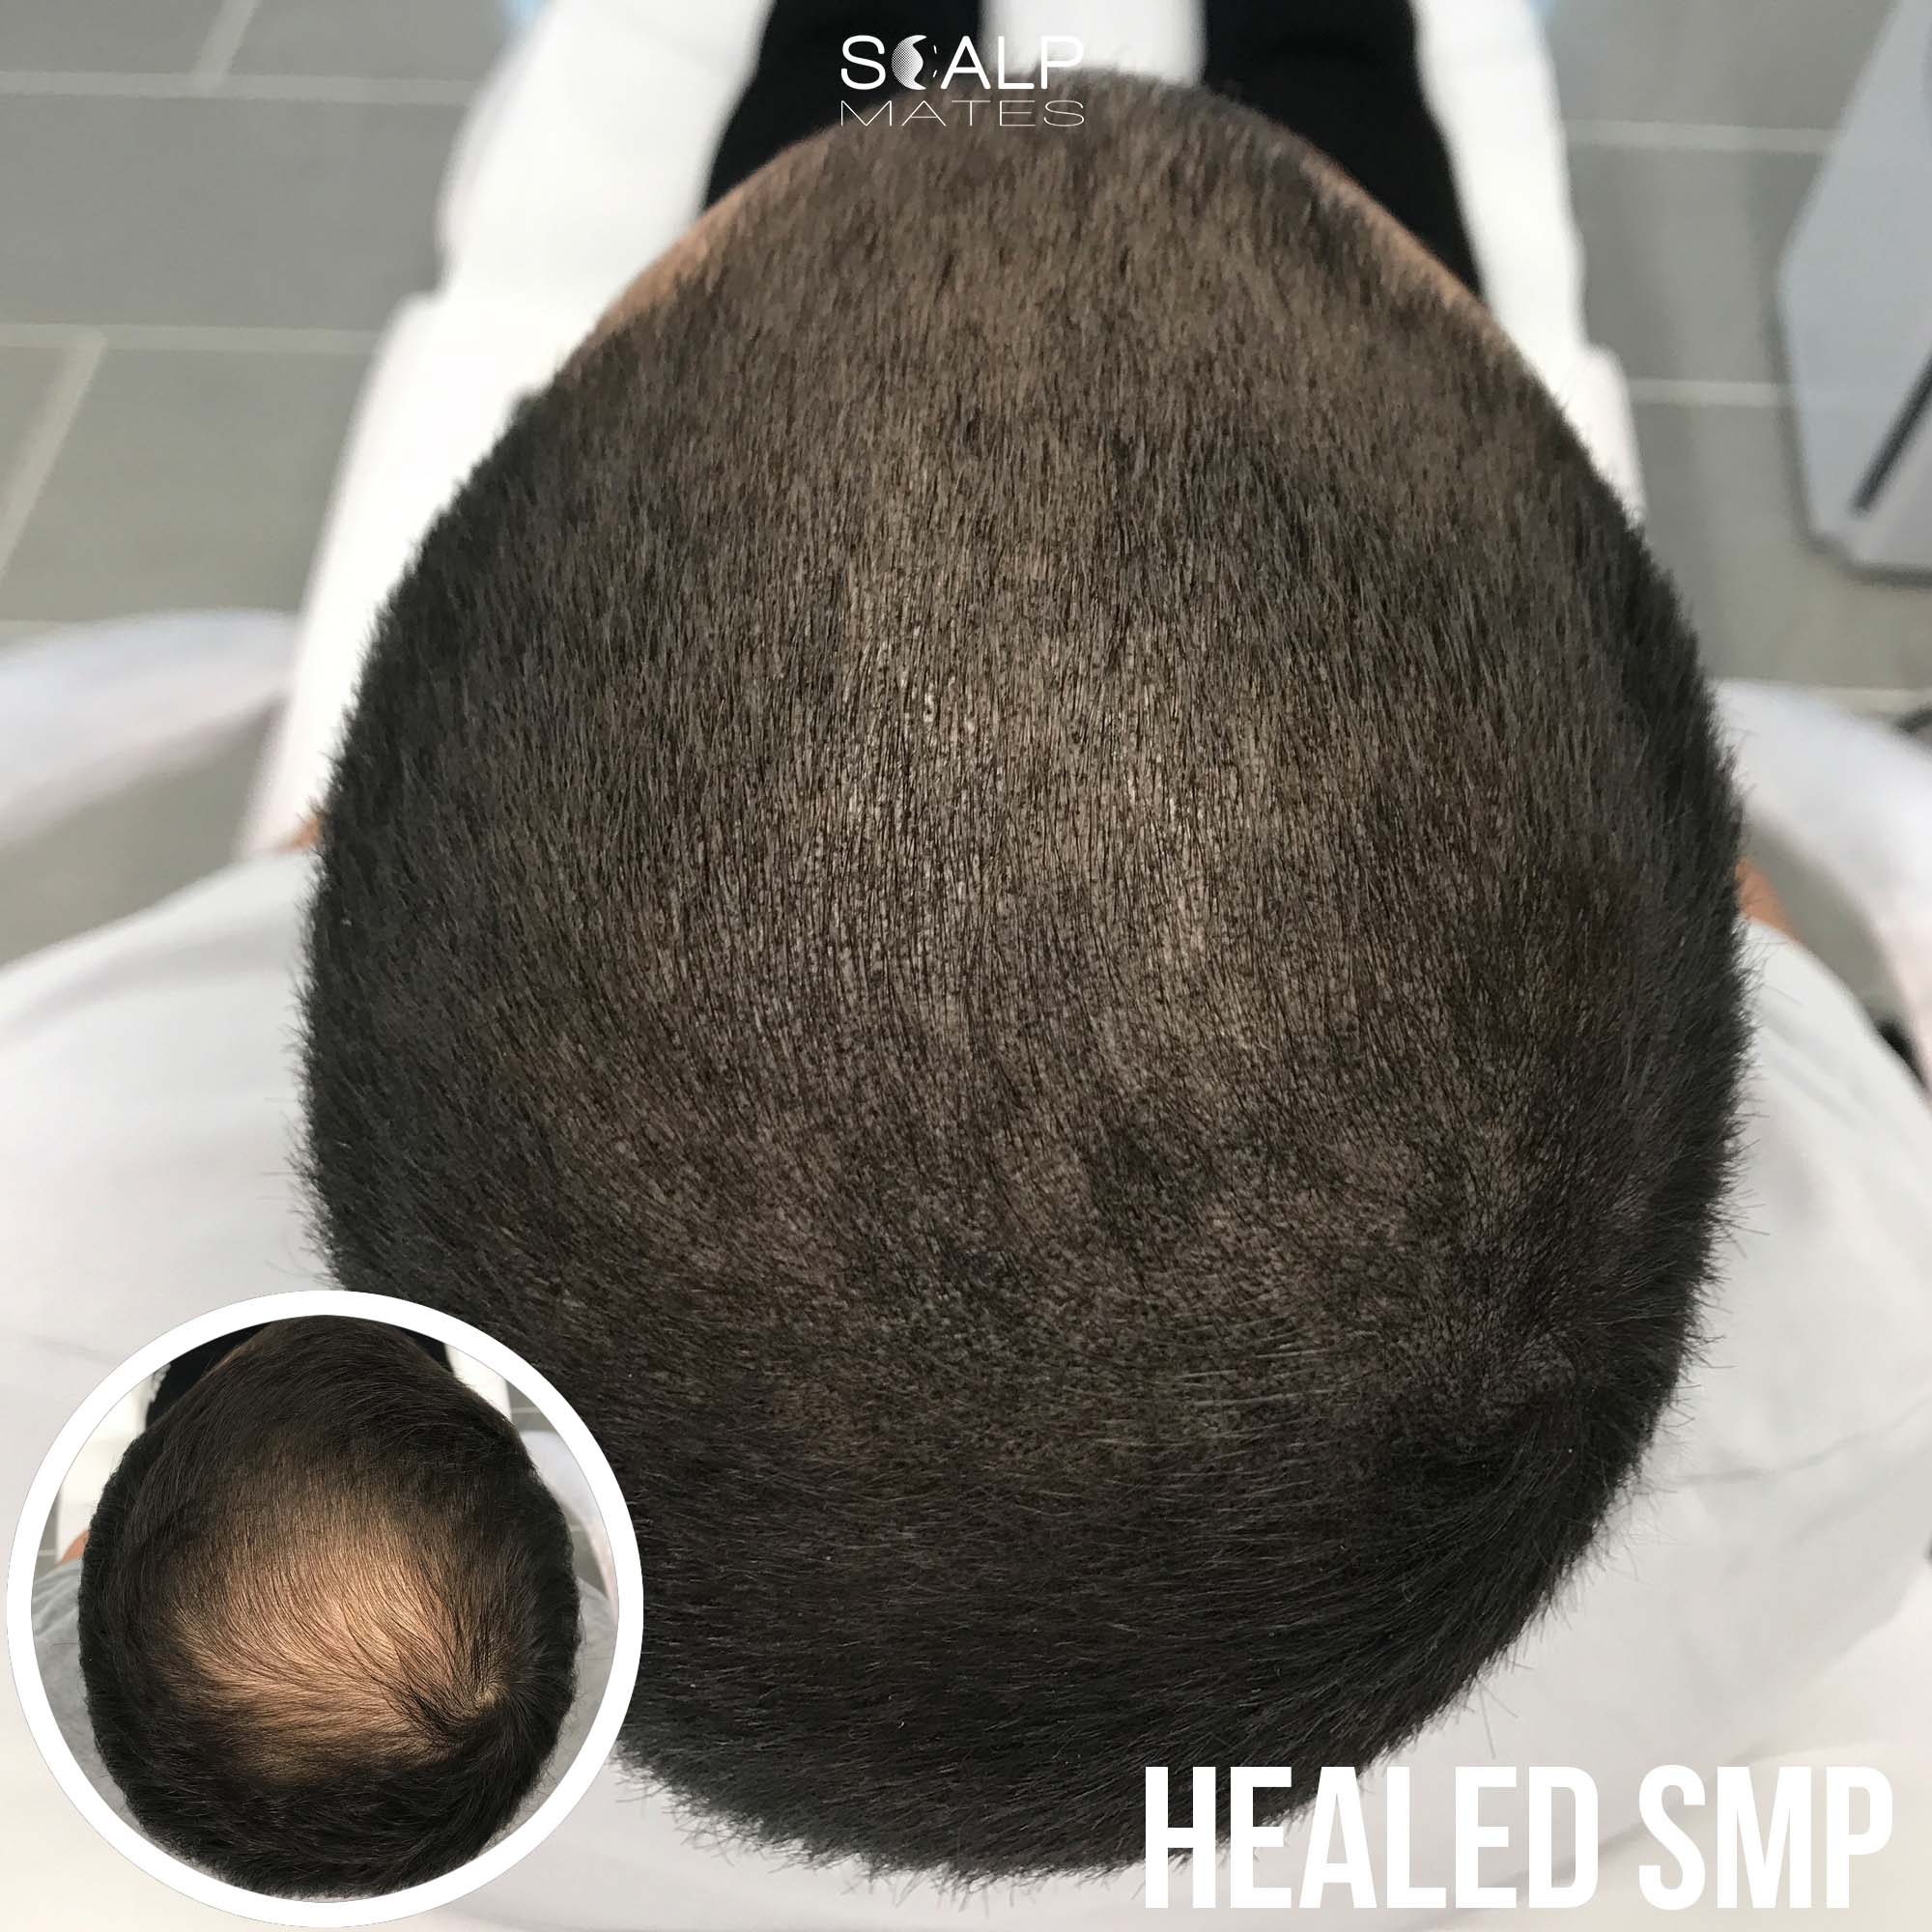 before and after Scap micropigmentation smp for hair thinning in men at Scalp Mates in Kings Heath, Birmingham, UK